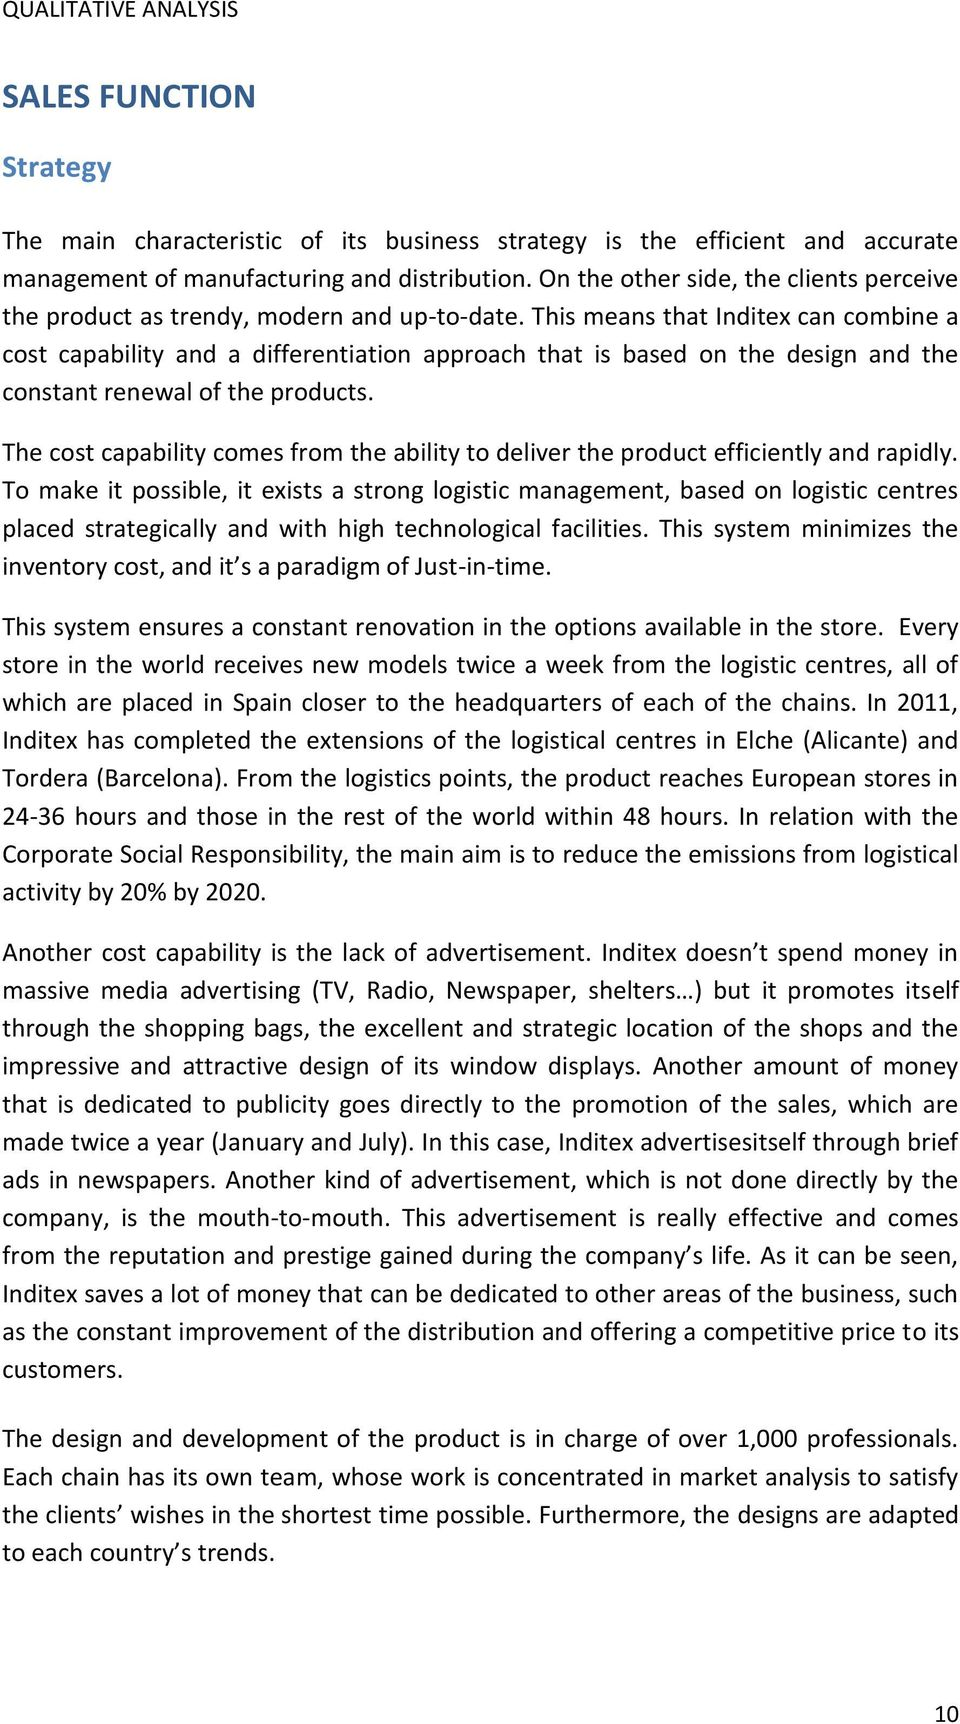 e9bbd6bfcb This means that Inditex can combine a cost capability and a differentiation  approach that is based